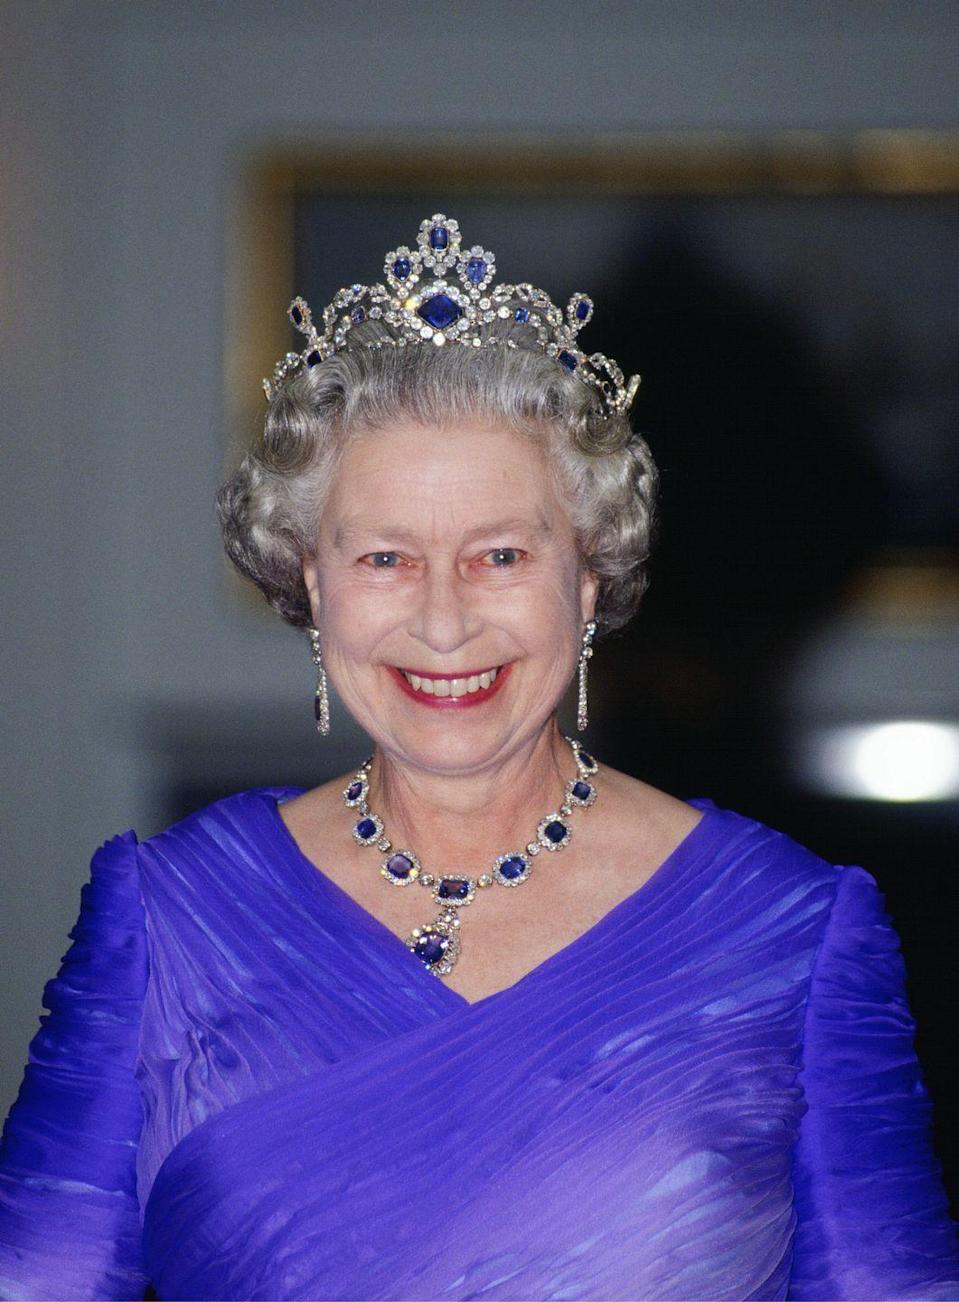 <p>The Queen's diamond and sapphire necklace and earrings, known fittingly as the Victorian Suite of Sapphire and Diamond set, were made originally in 1850 and gifted to Lilibet by her father, King George VI, for her wedding. The matching tiara was made in 1963. She's seen wearing them here on June 11, 1992.</p>